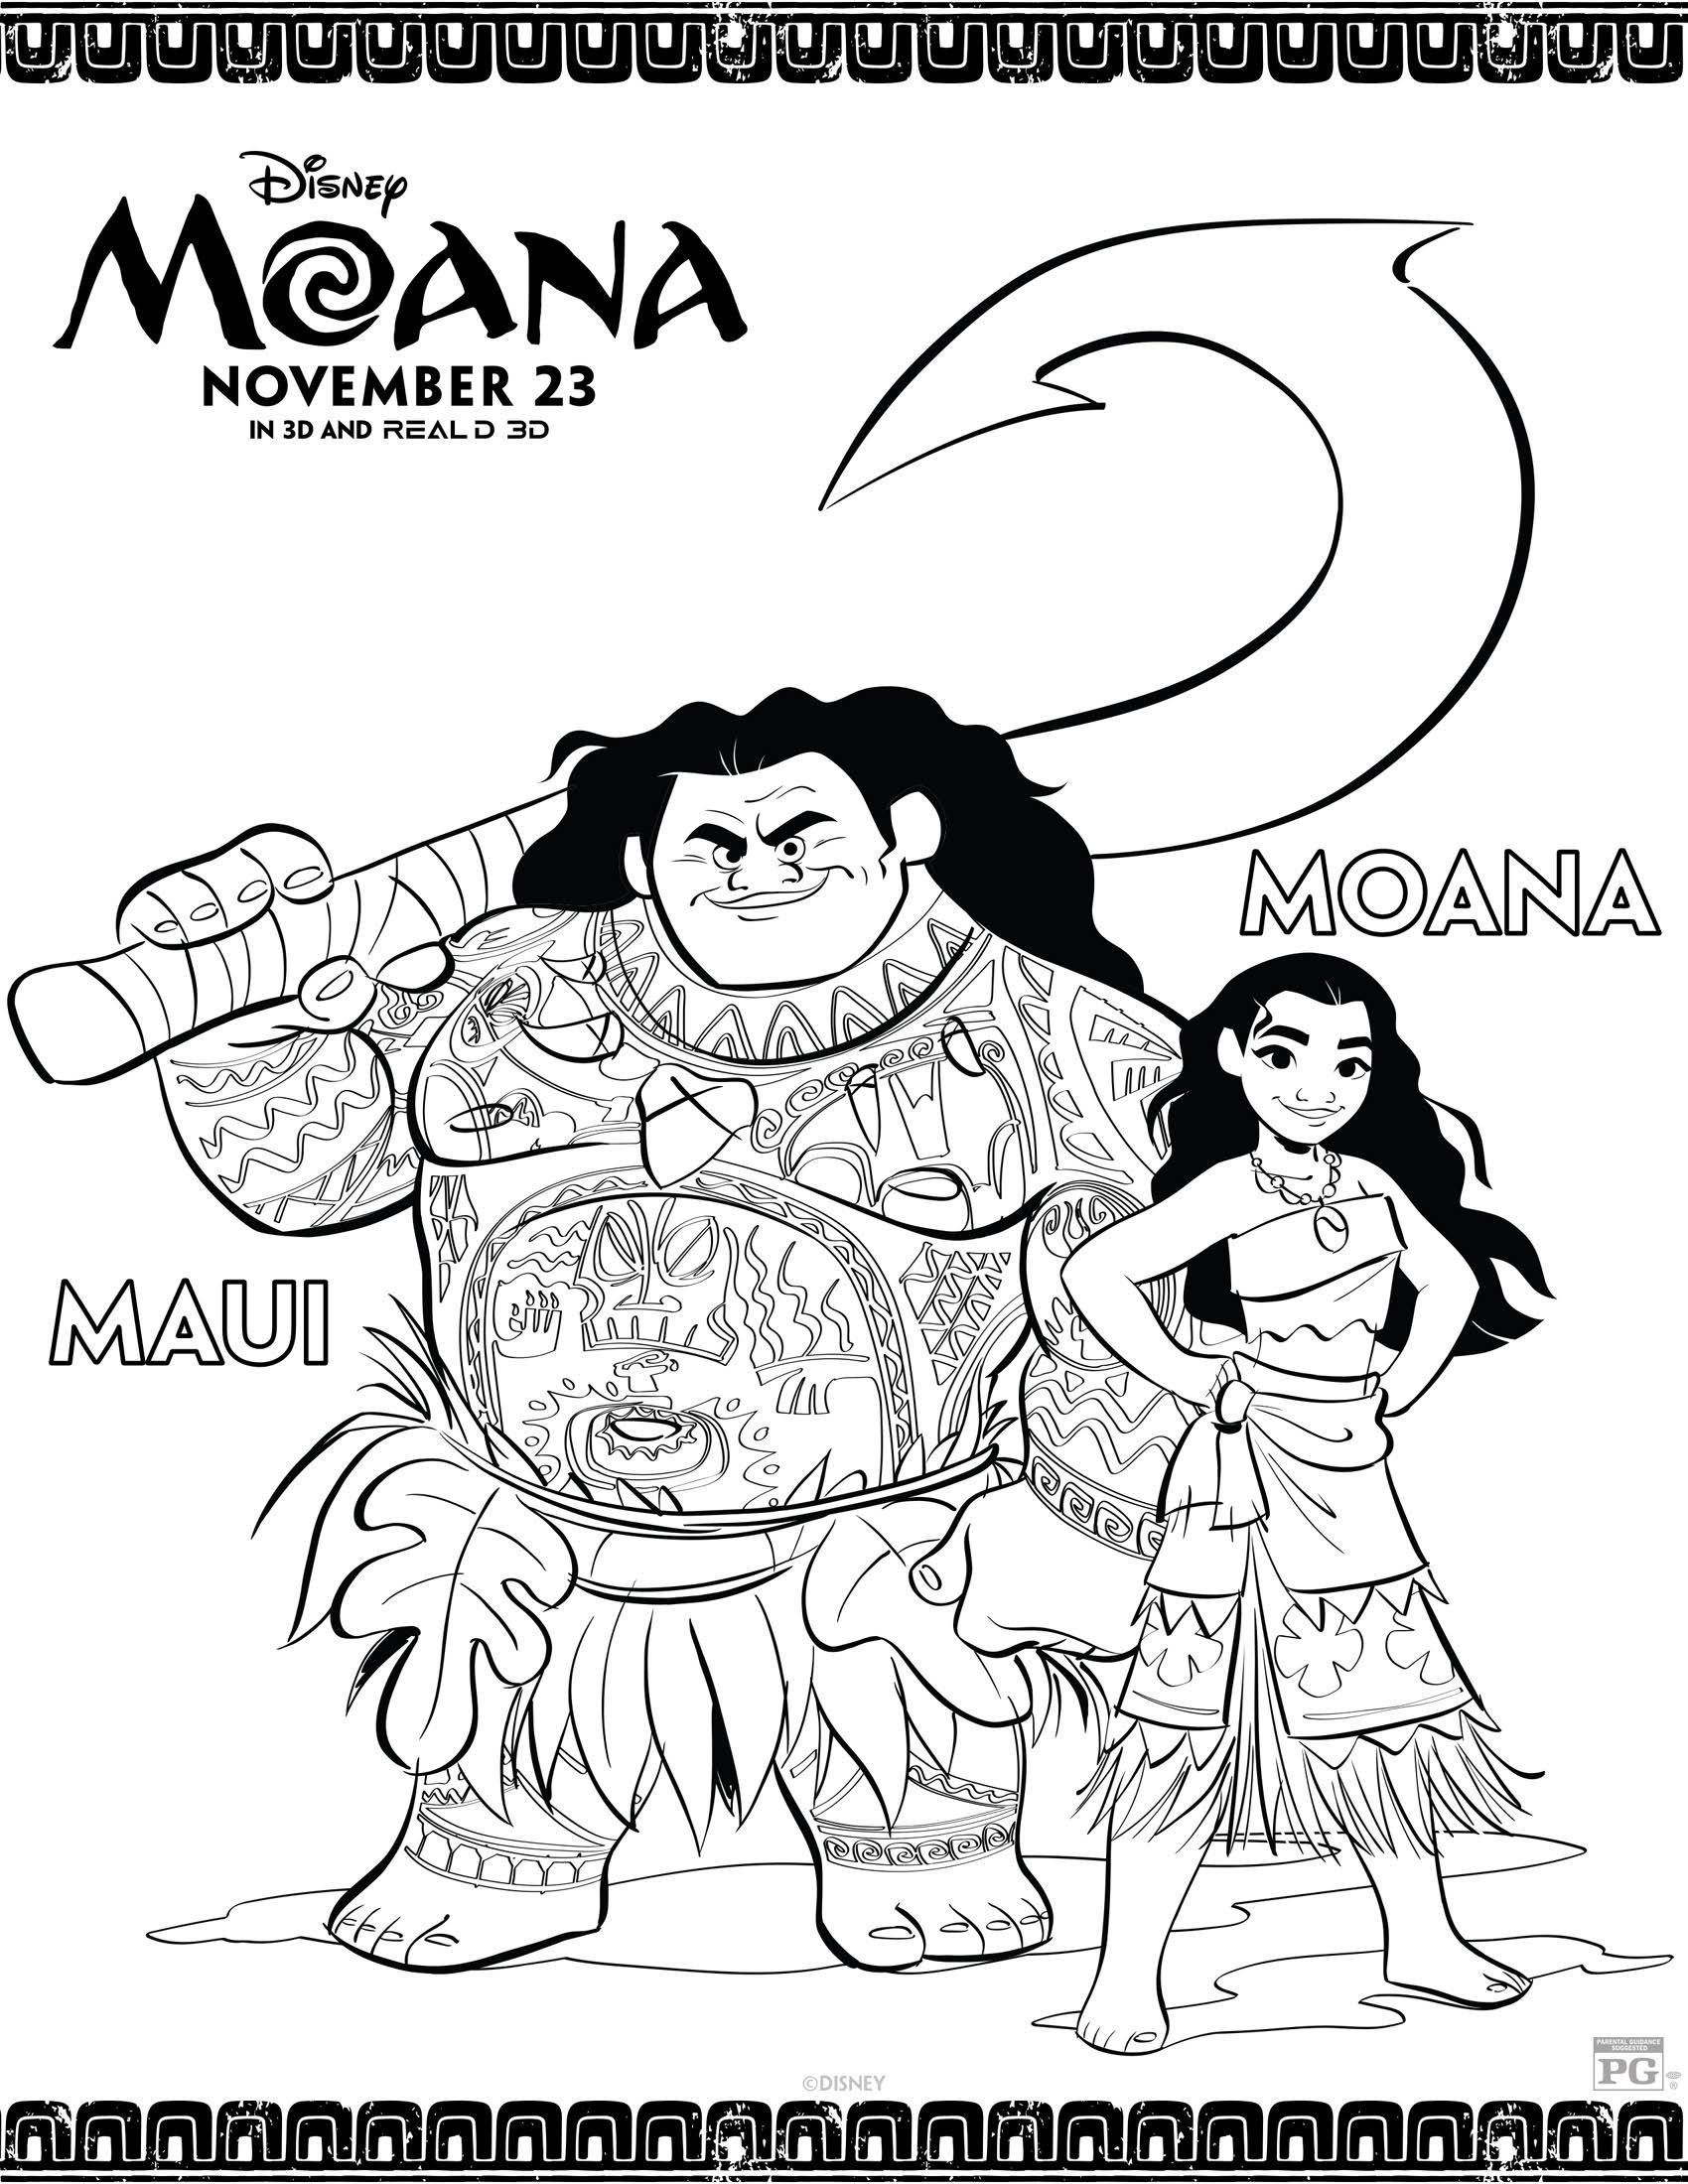 moana coloring pages disney39s moana coloring pages and activity sheets printables coloring moana pages 1 1